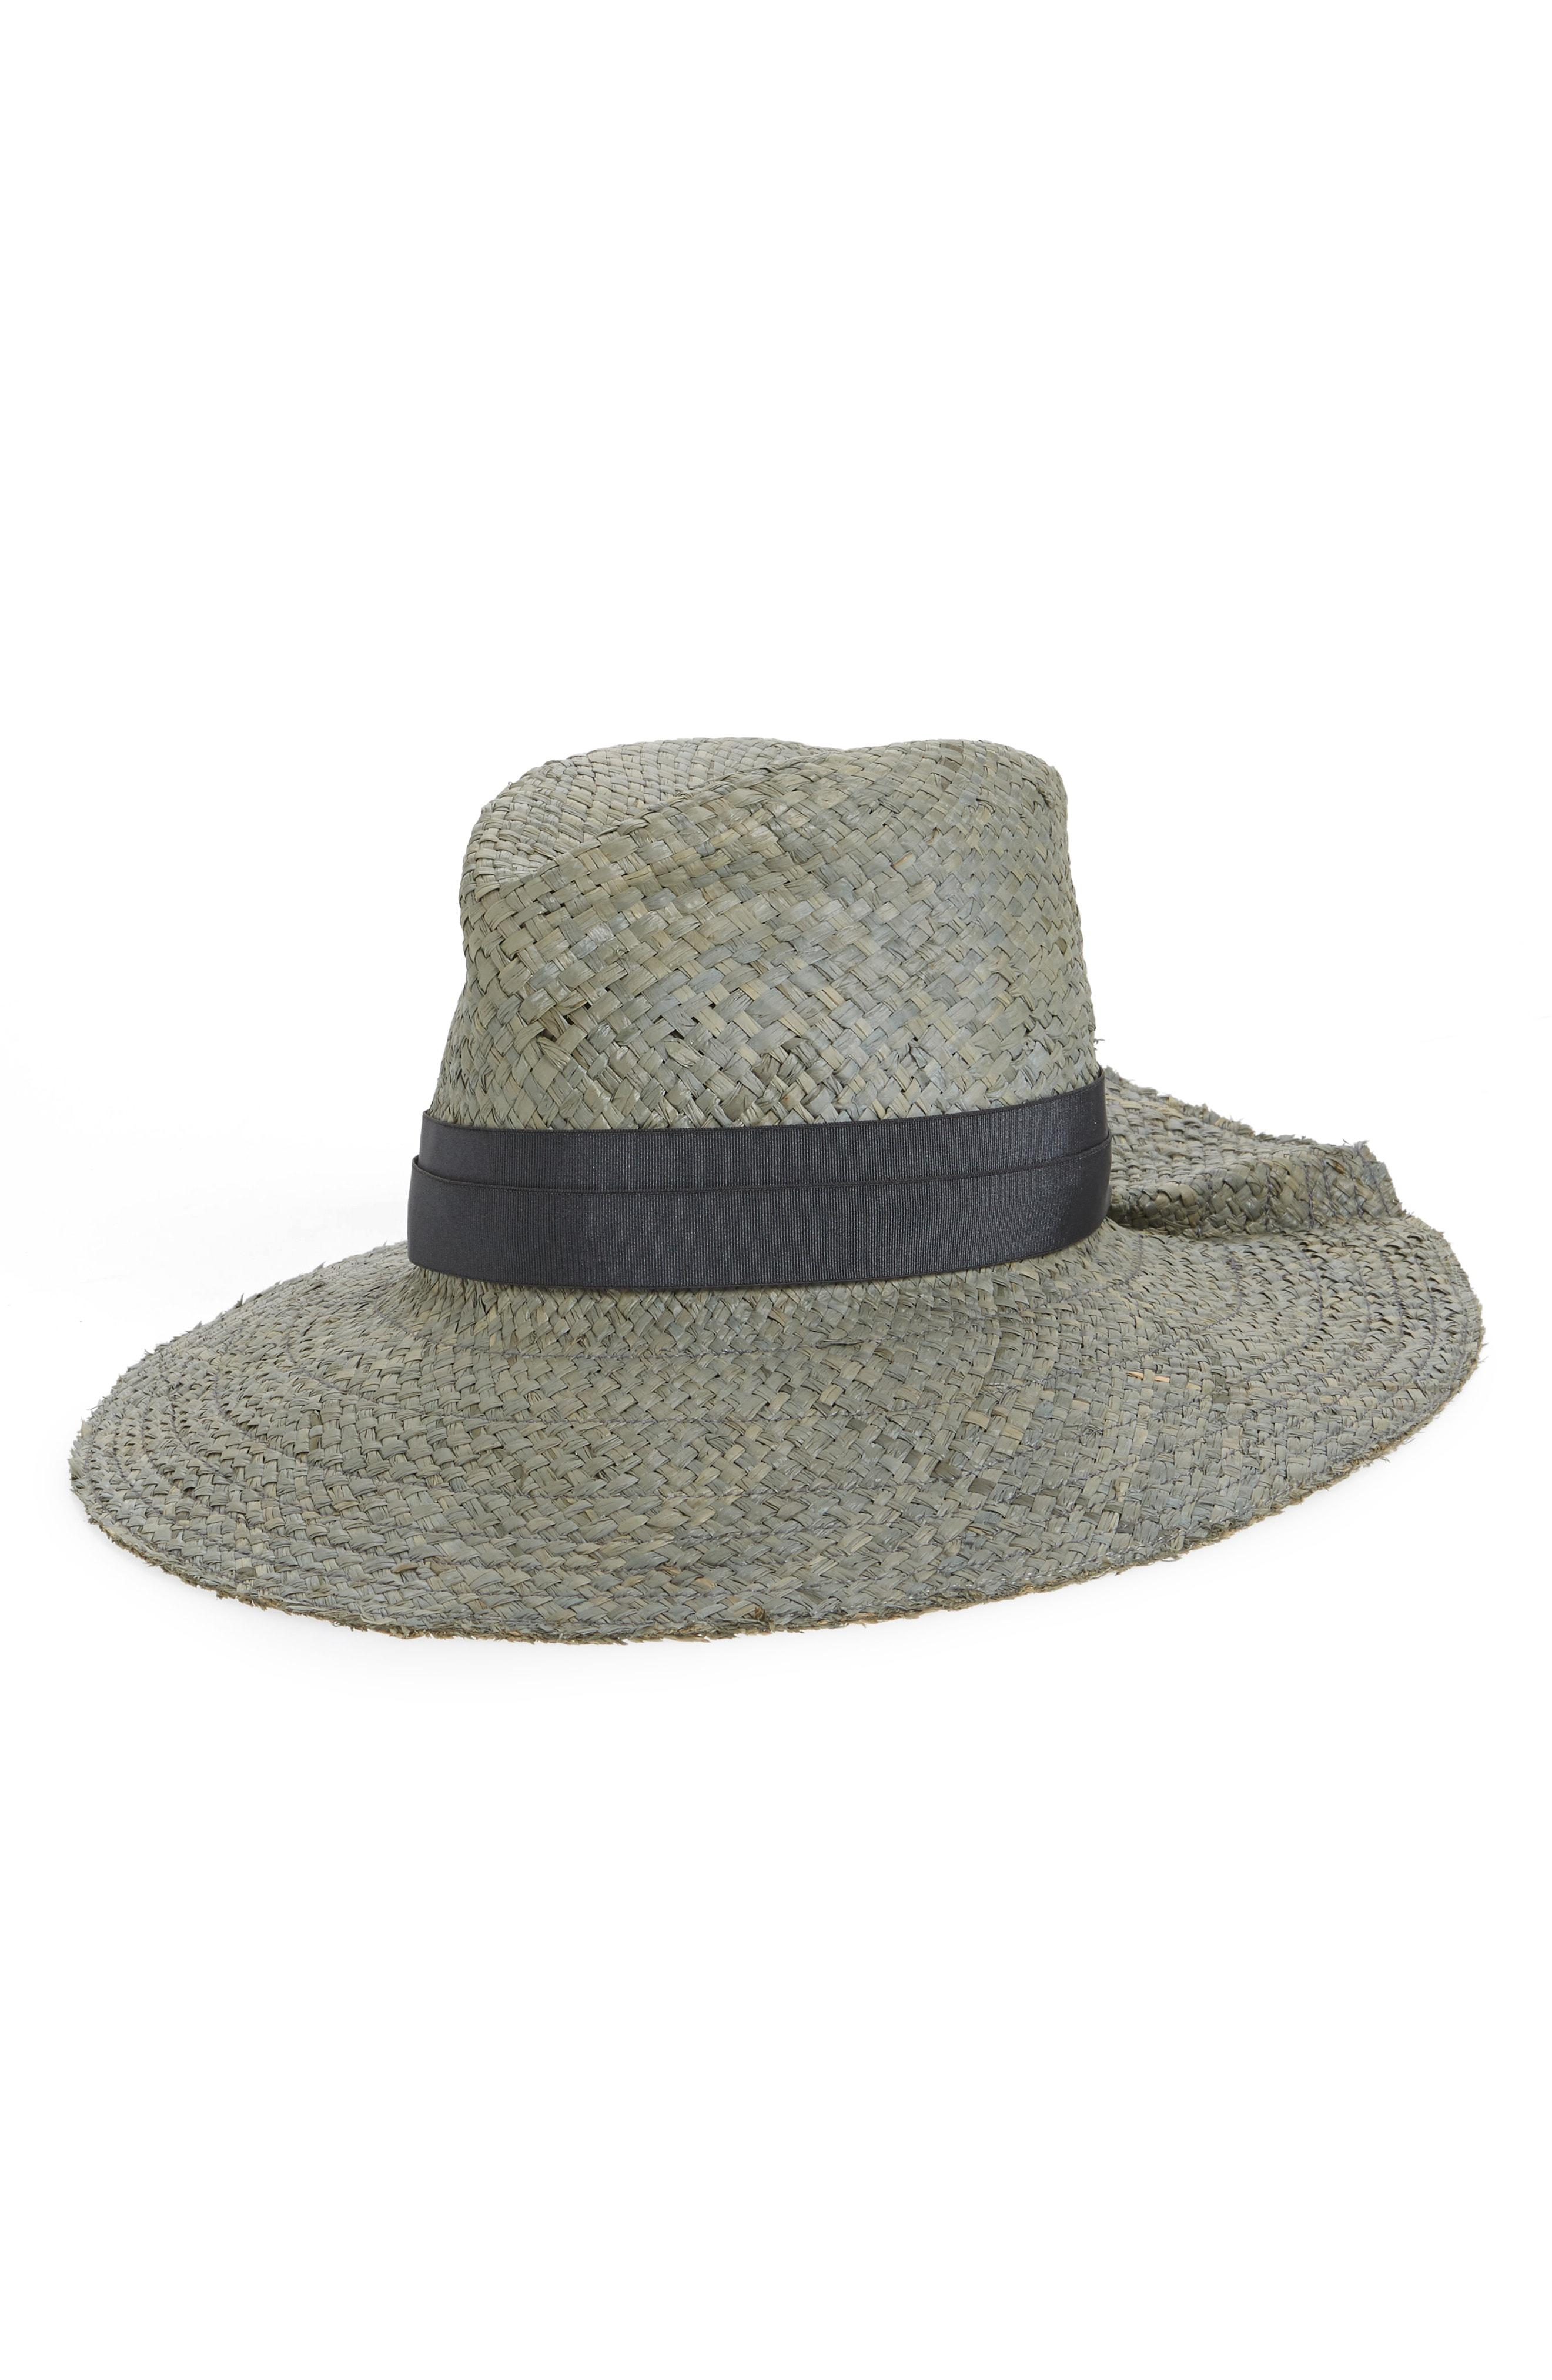 ff5ef6c1928 Lyst - Lola Hats First Aid Snap Straw Hat - in Gray